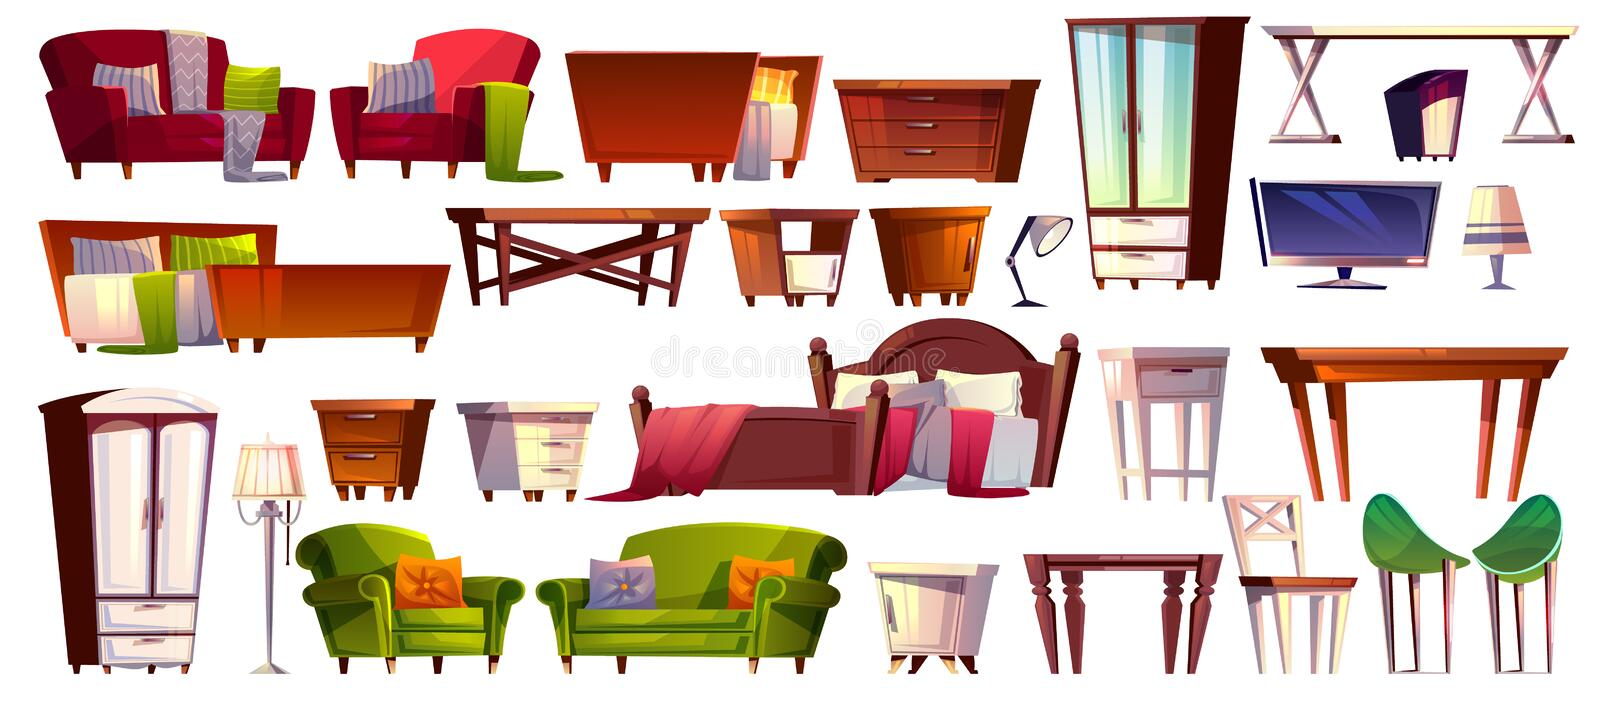 Home furniture vector isolated interior icons stock illustration